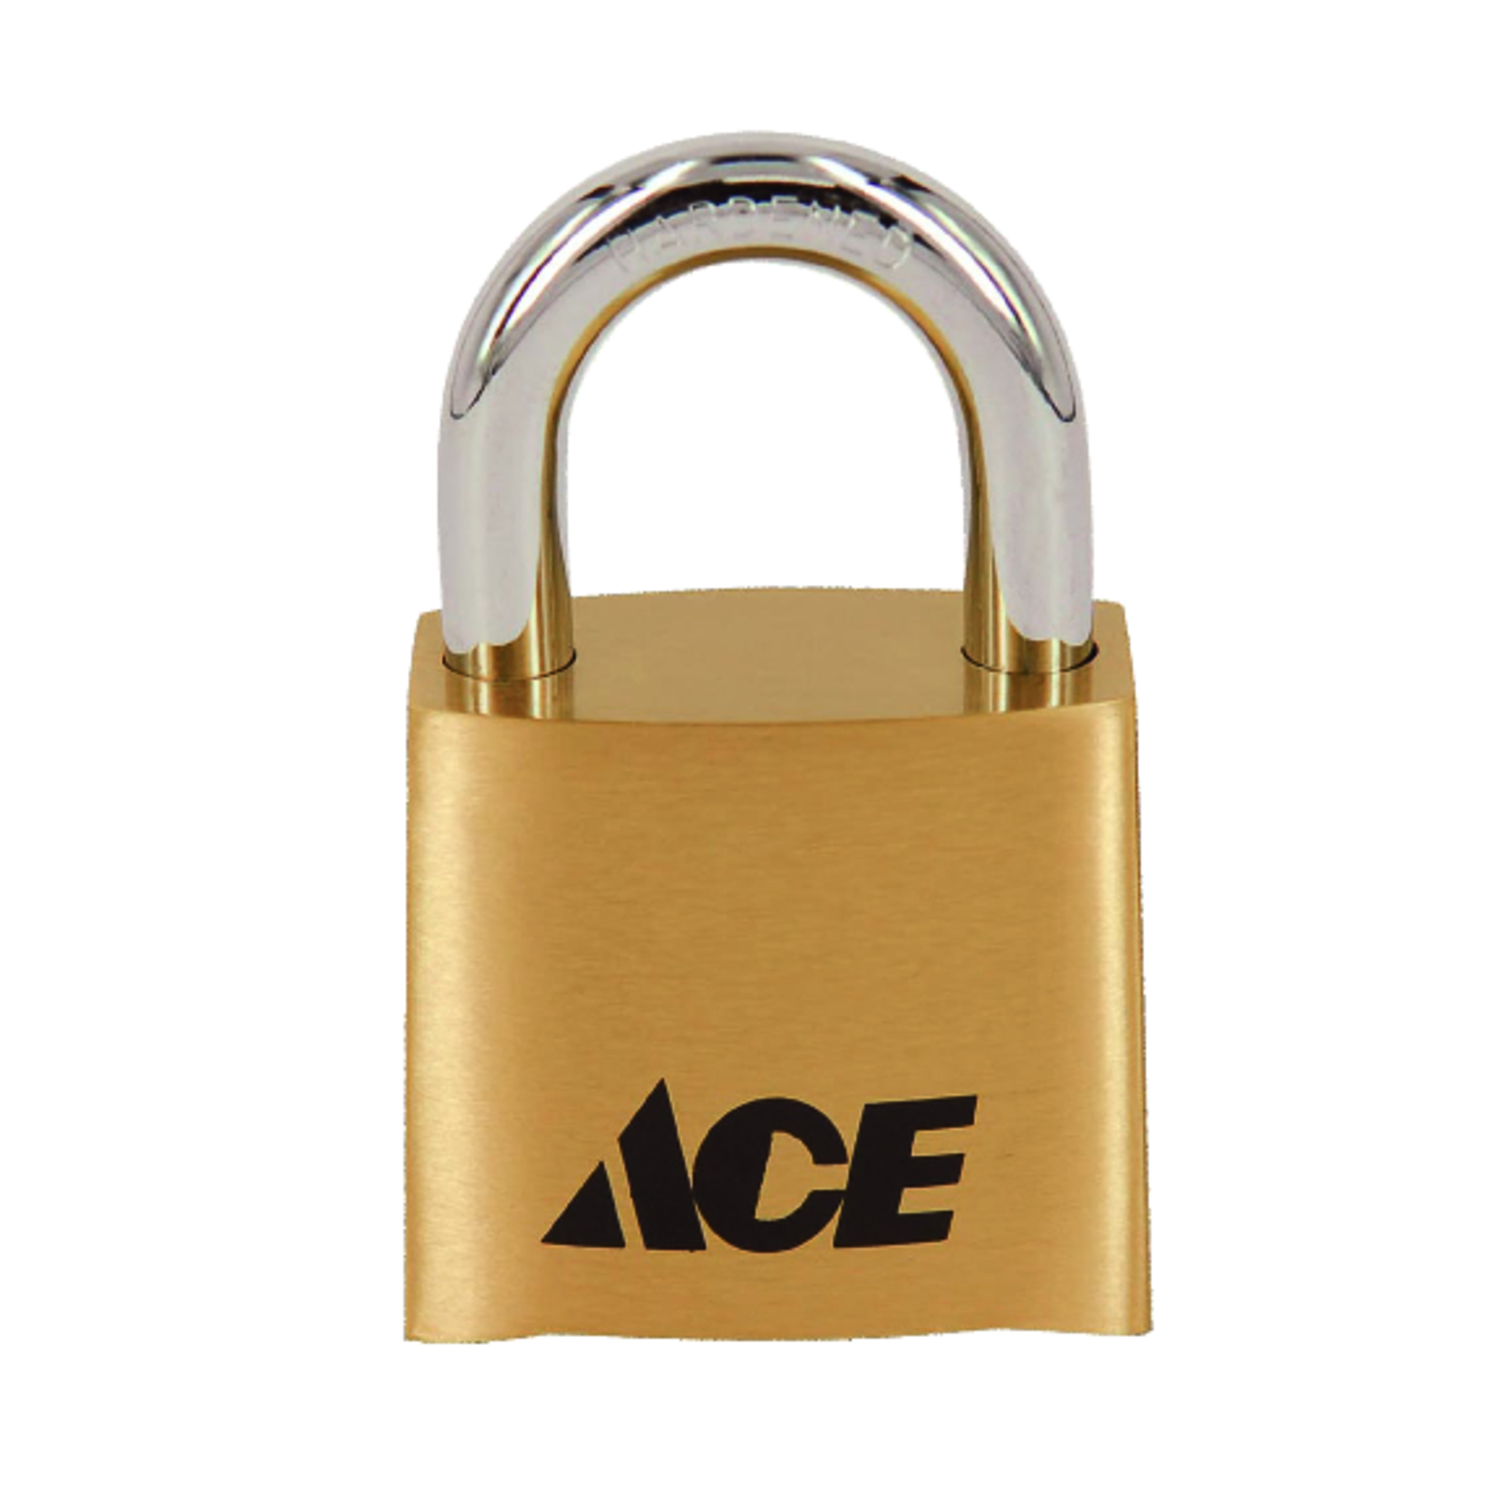 Ace  1-11/16 in. H x 1 in. W 4-Dial Combination  Padlock  Die Cast  1 pk